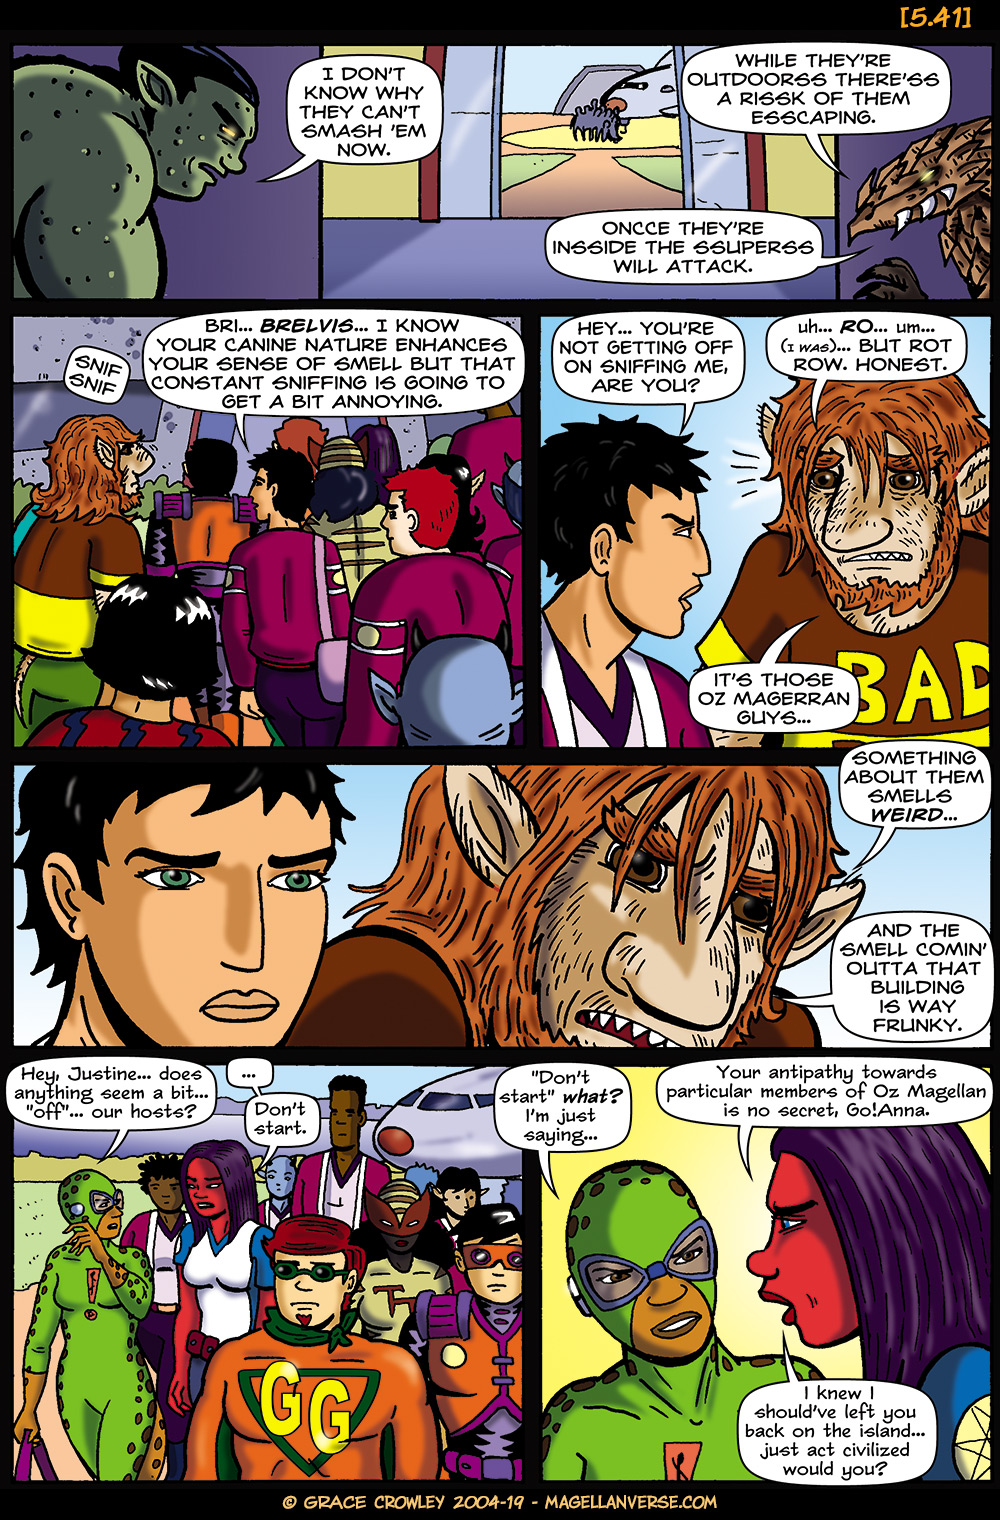 Page 5.41